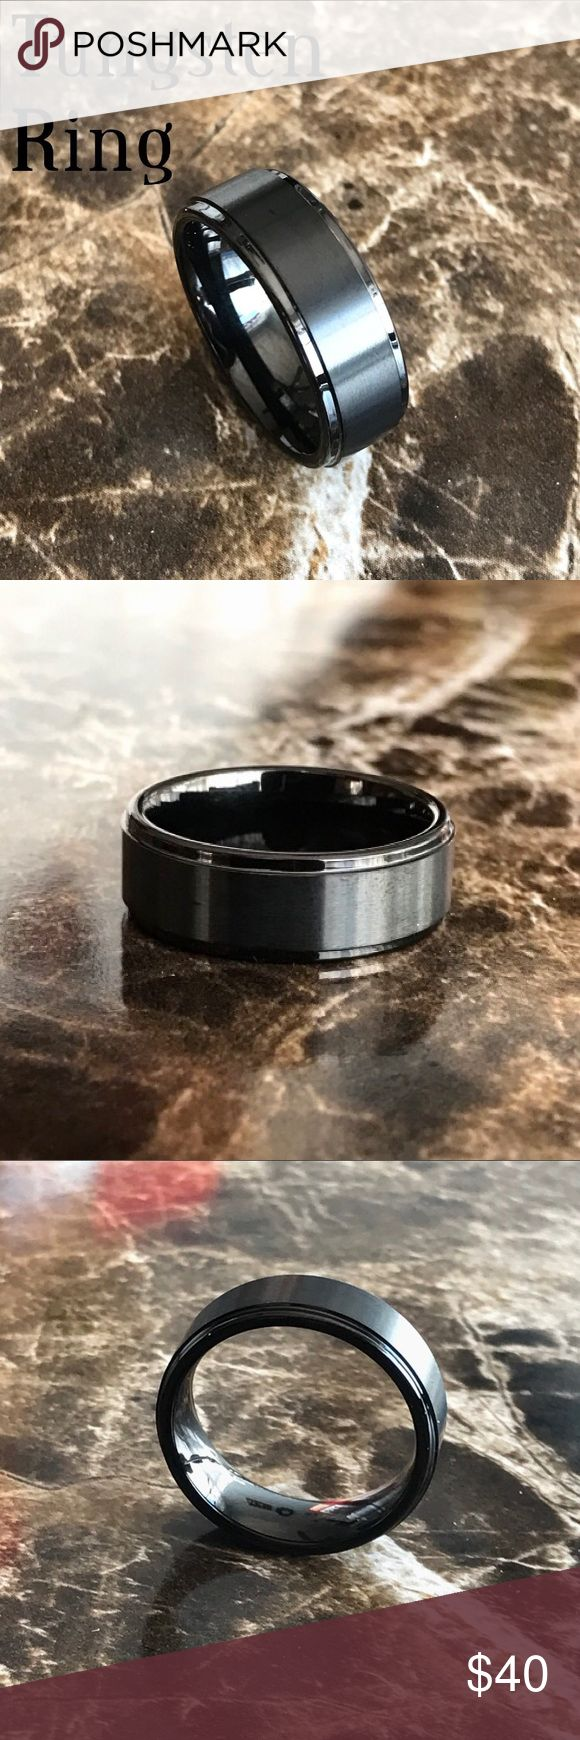 8MM Black Tungsten Carbide Ring Wedding Band Brand new No trades  Sizes available 6.5/7.5/8.5/9.5/10.5/11.5  Material: Tungsten Carbide Band Width: 8MM Fit: Comfort Finish: Brushed Color: Black  Tungsten is two times tougher than steel and twice the density of steel. It will not rust, tarnish or turn your finger green.                                              ~Ring box included ~ Accessories Jewelry